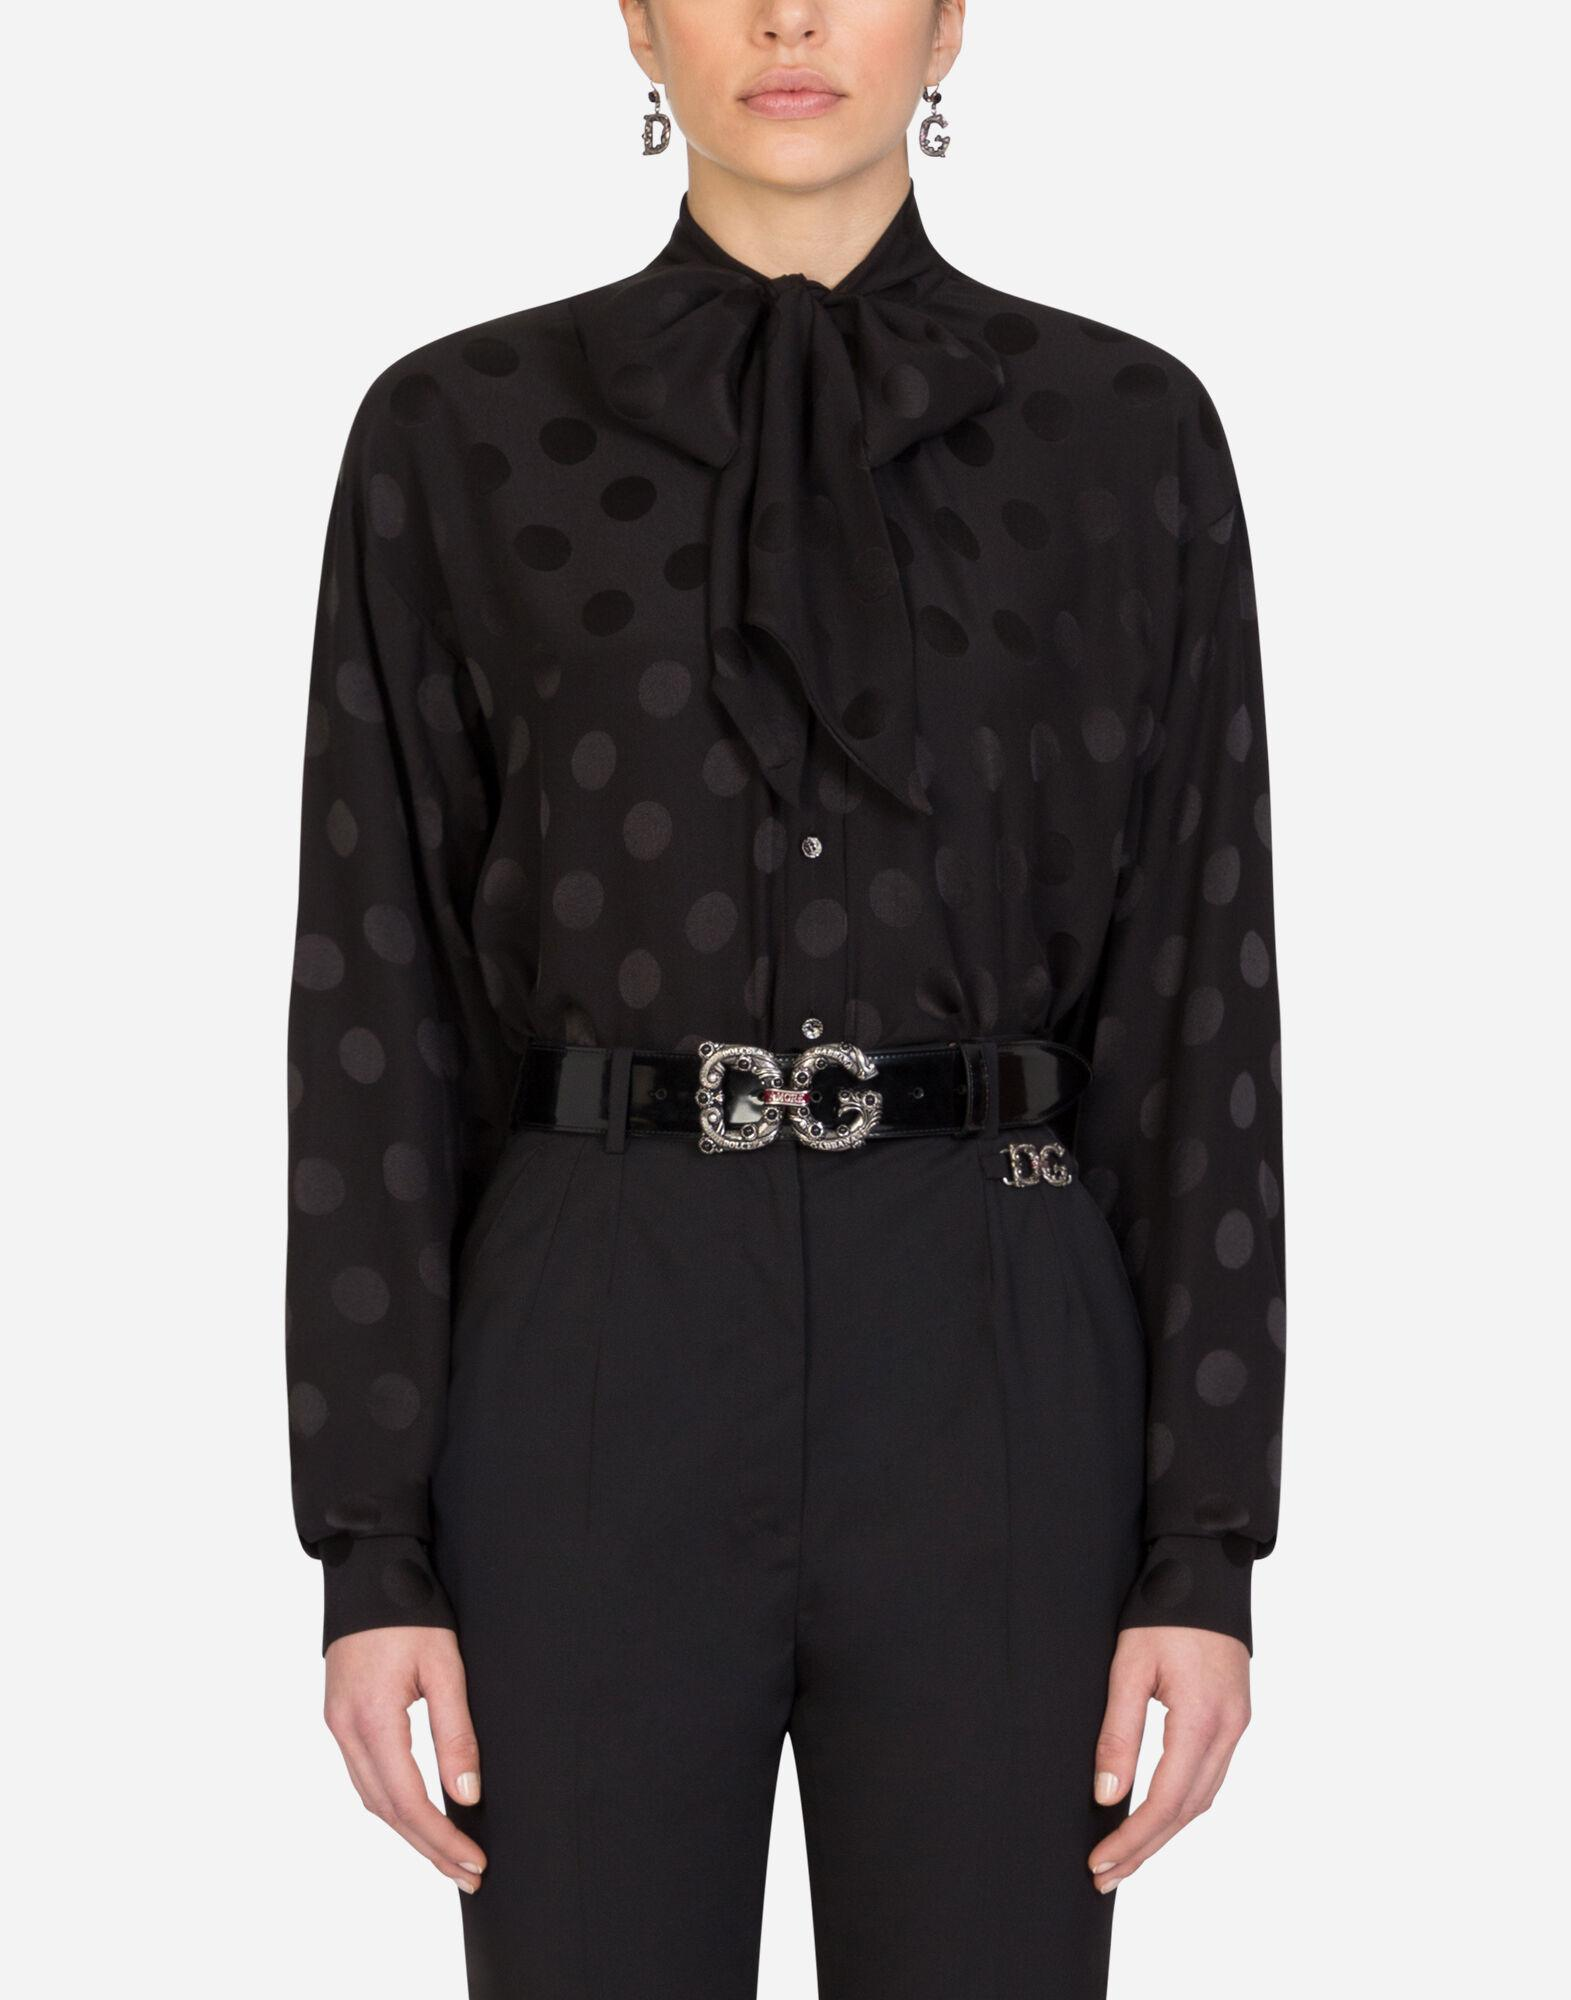 Satin jacquard shirt with pussy bow